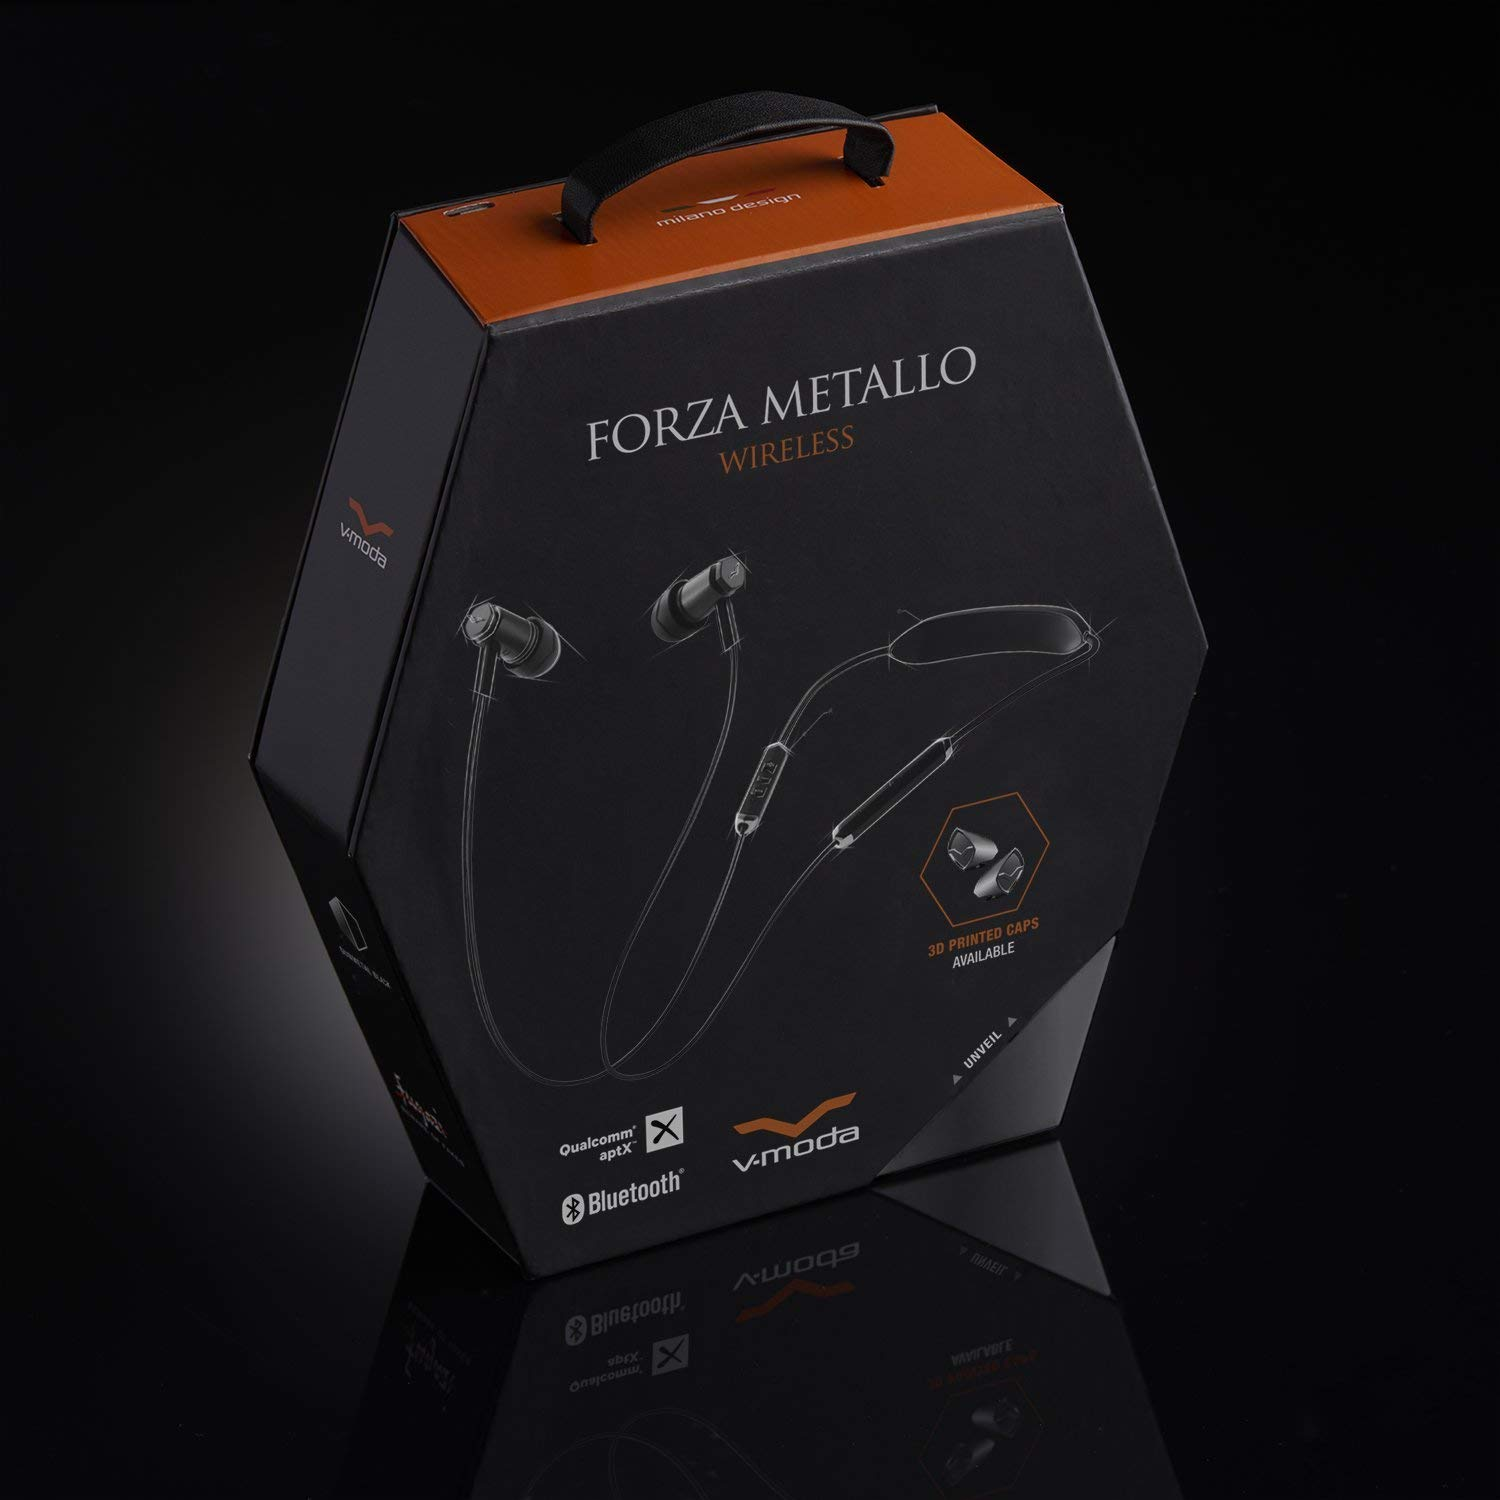 V-MODA Forza Metallo Wireless